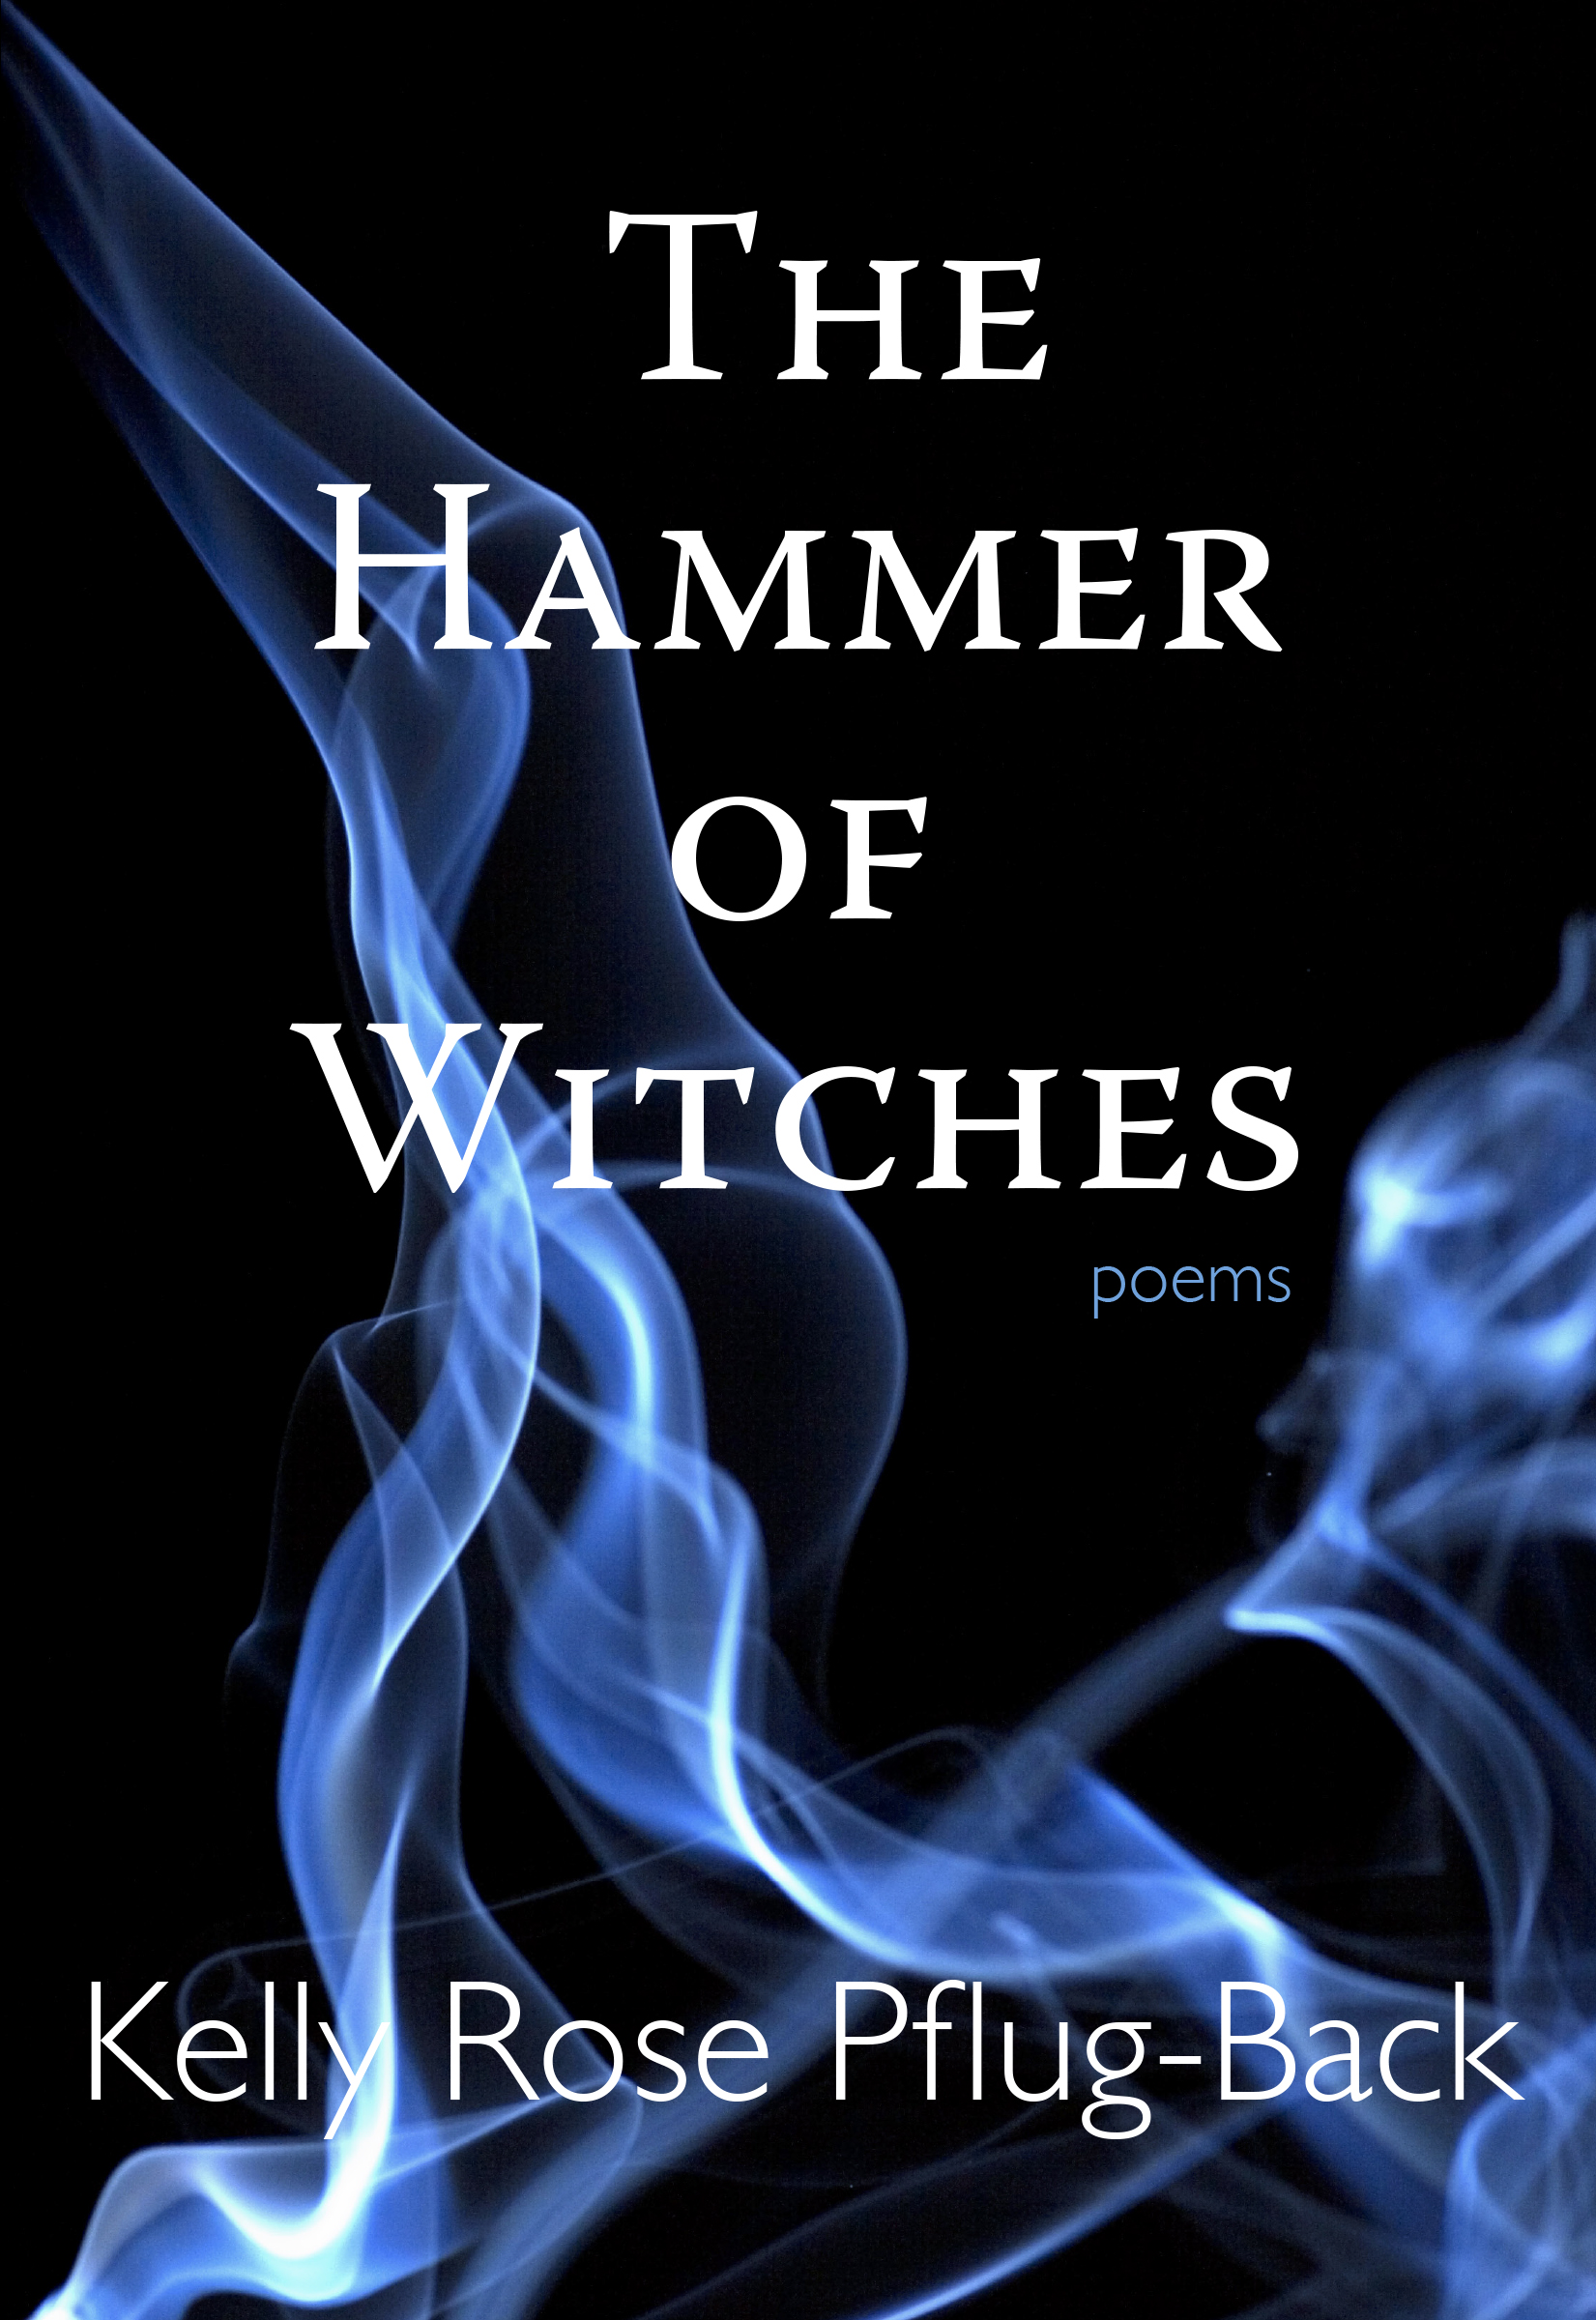 Book cover for The Hammer of Witches, Cover image depicts title in large white font, and blue smoke artistically rising